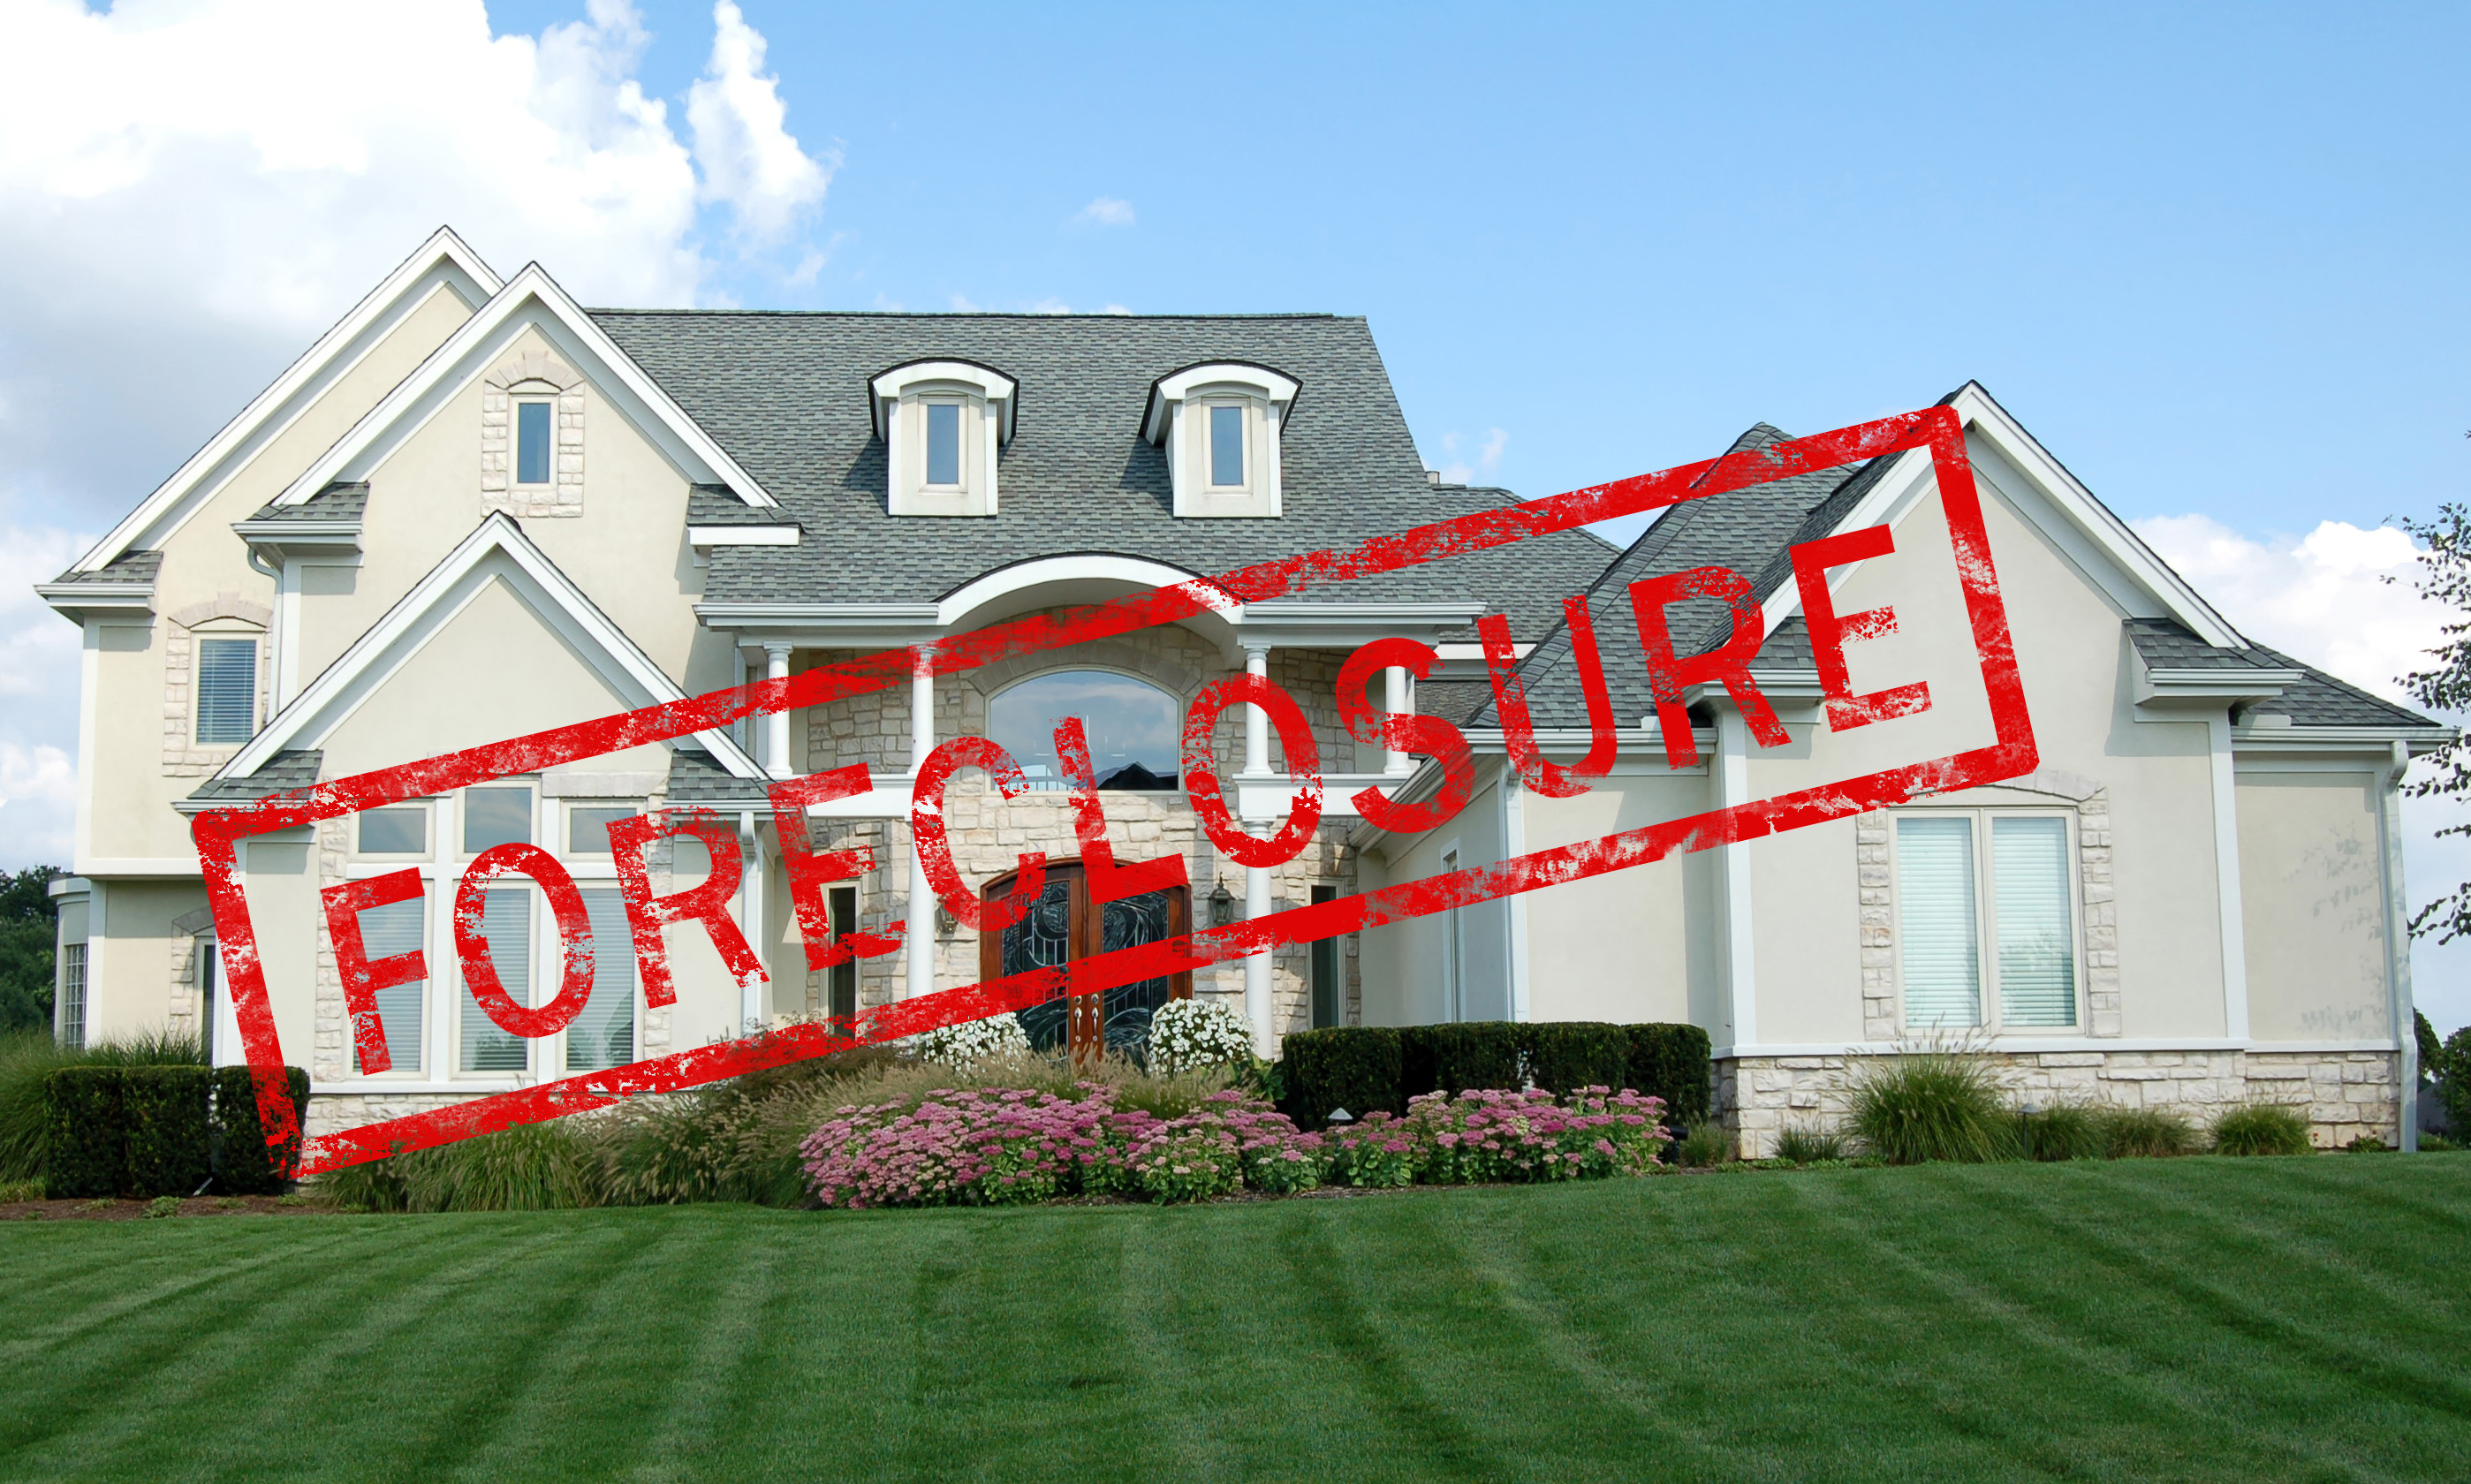 Call Young Real Estate Appraisals to discuss valuations regarding Riverside foreclosures